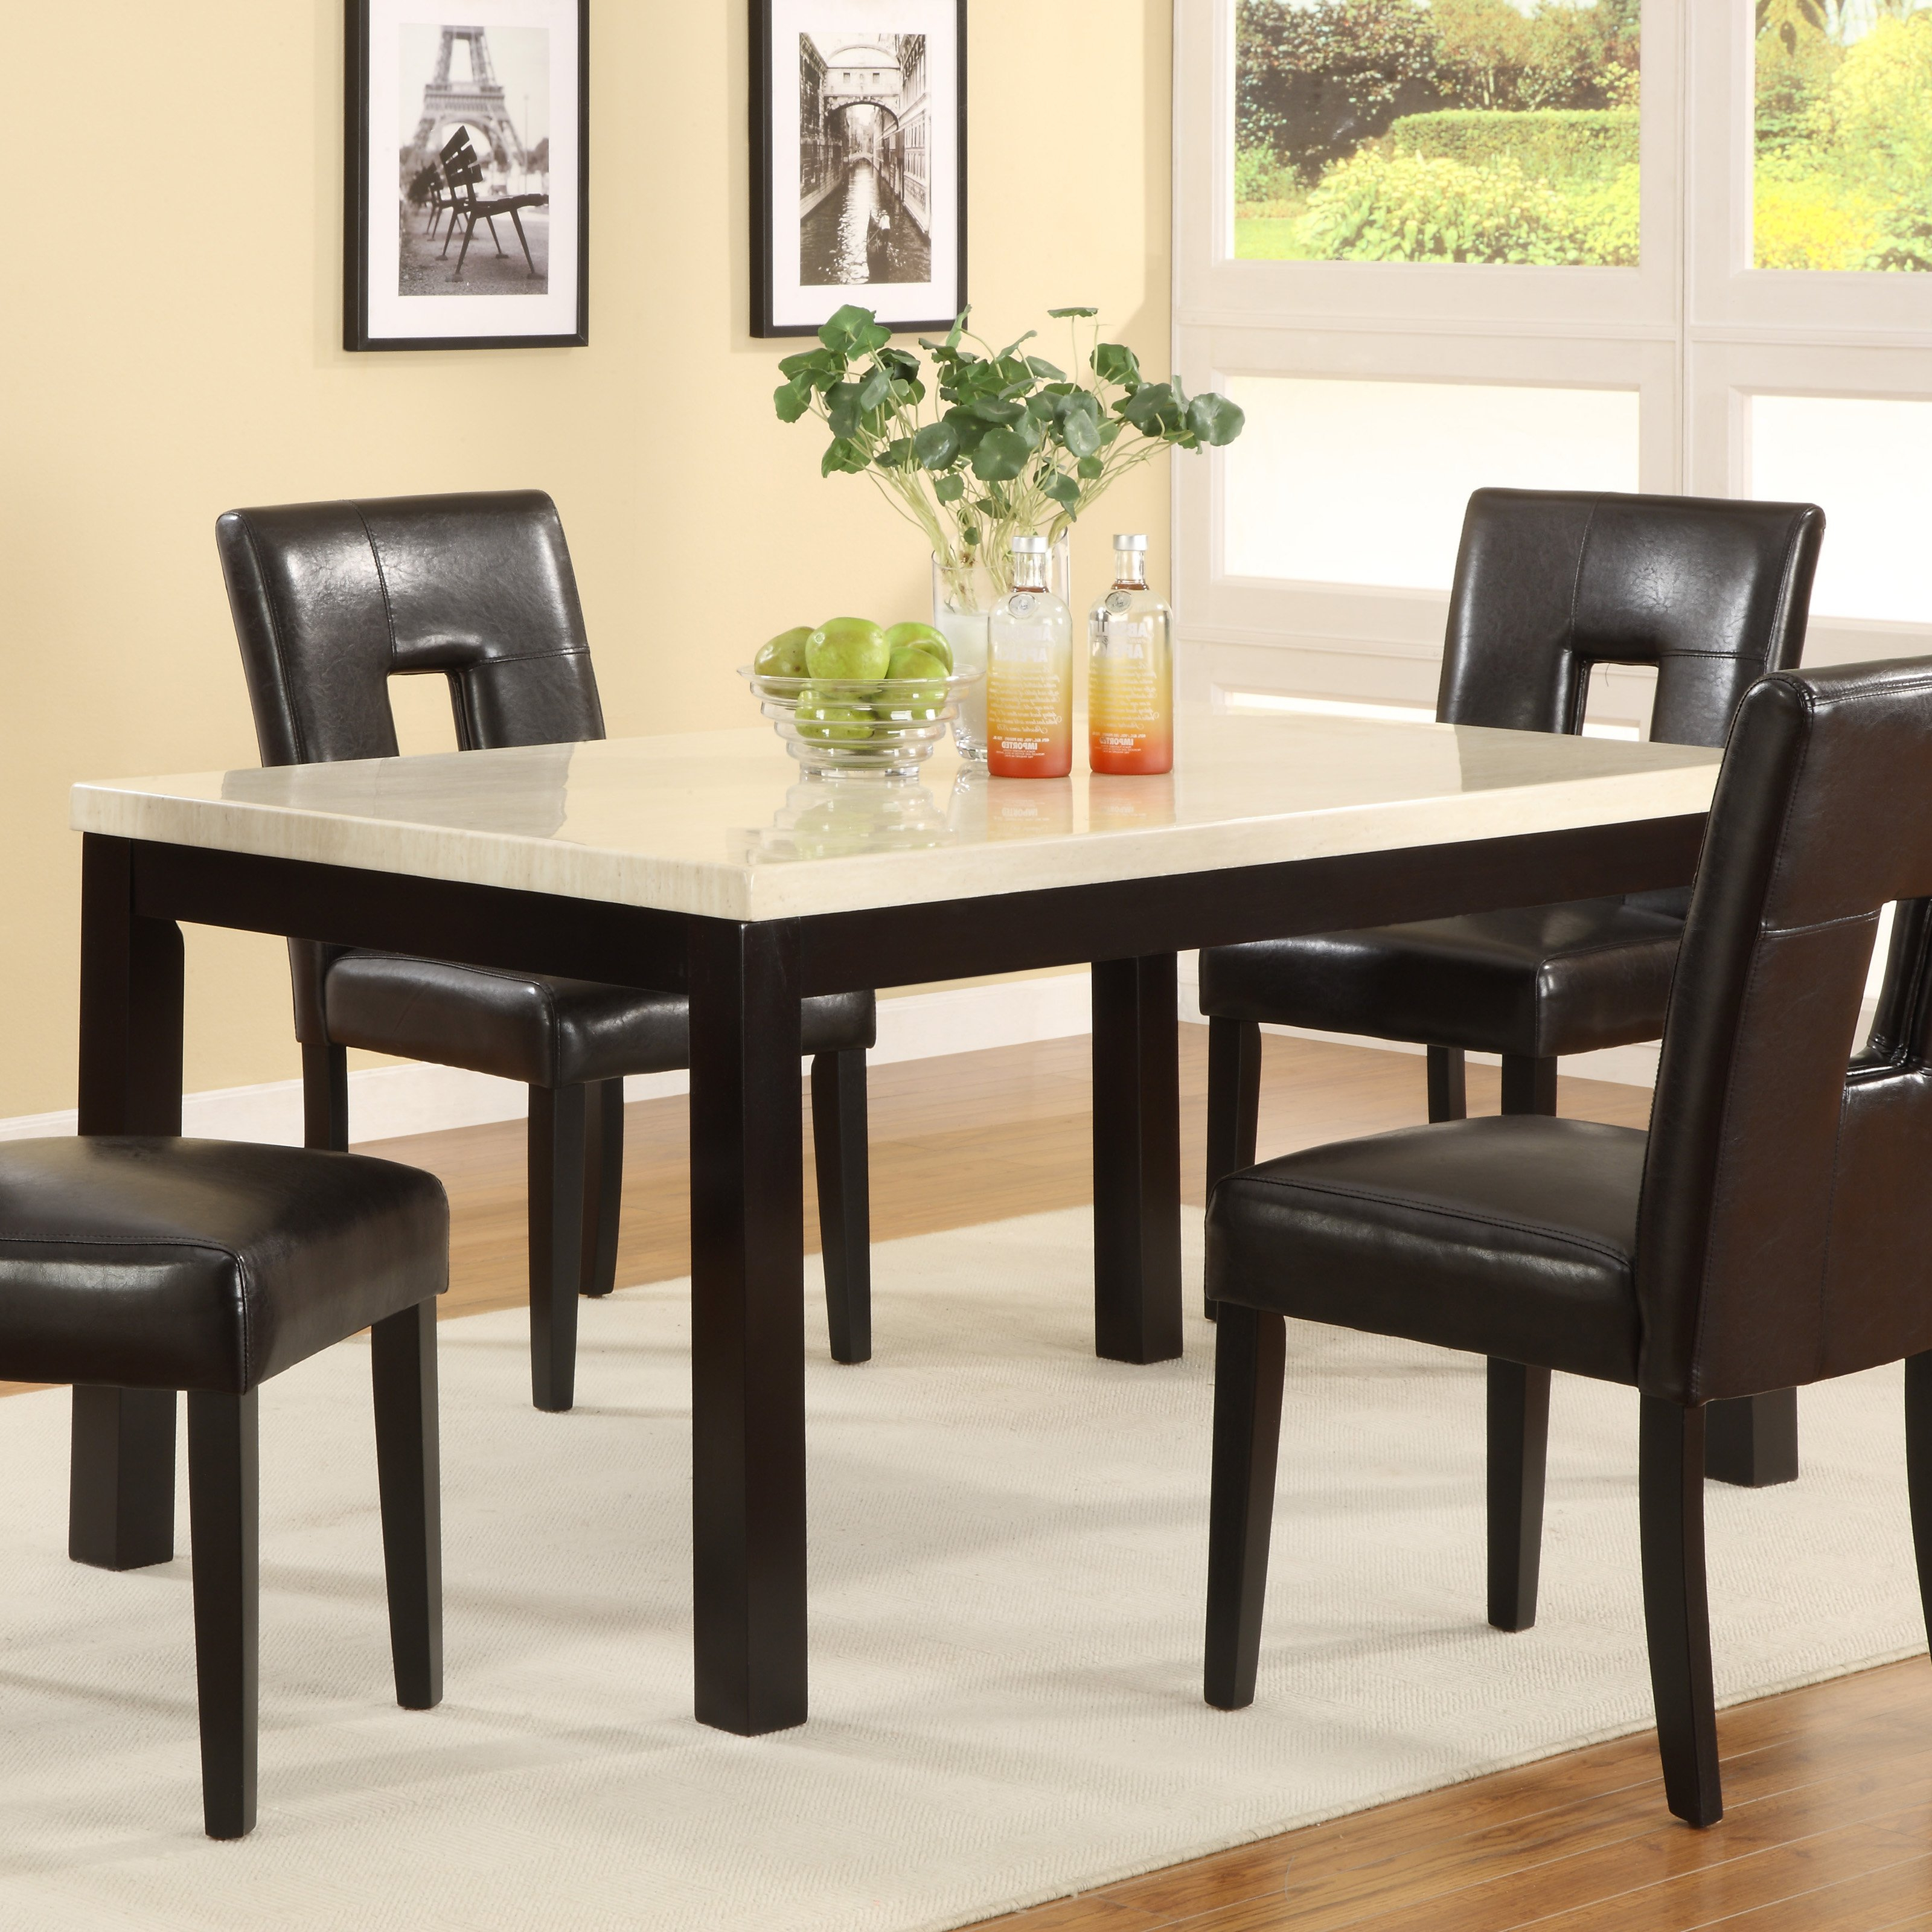 Rossiter 3 Piece Dining Sets Pertaining To Recent Metropolitan 3 Piece Dining Set, Multiple Finishes (Gallery 19 of 20)